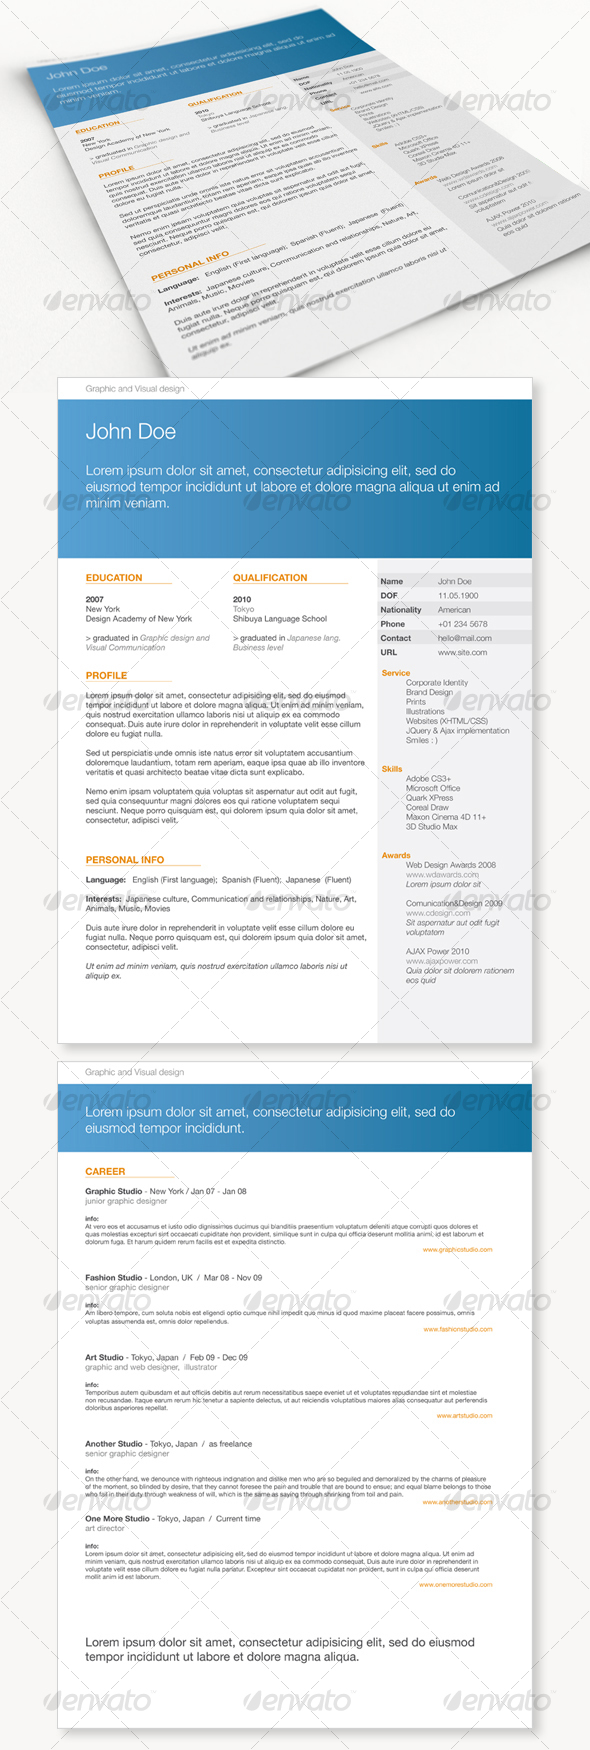 Get Minimal - Resume 01 - Resumes Stationery